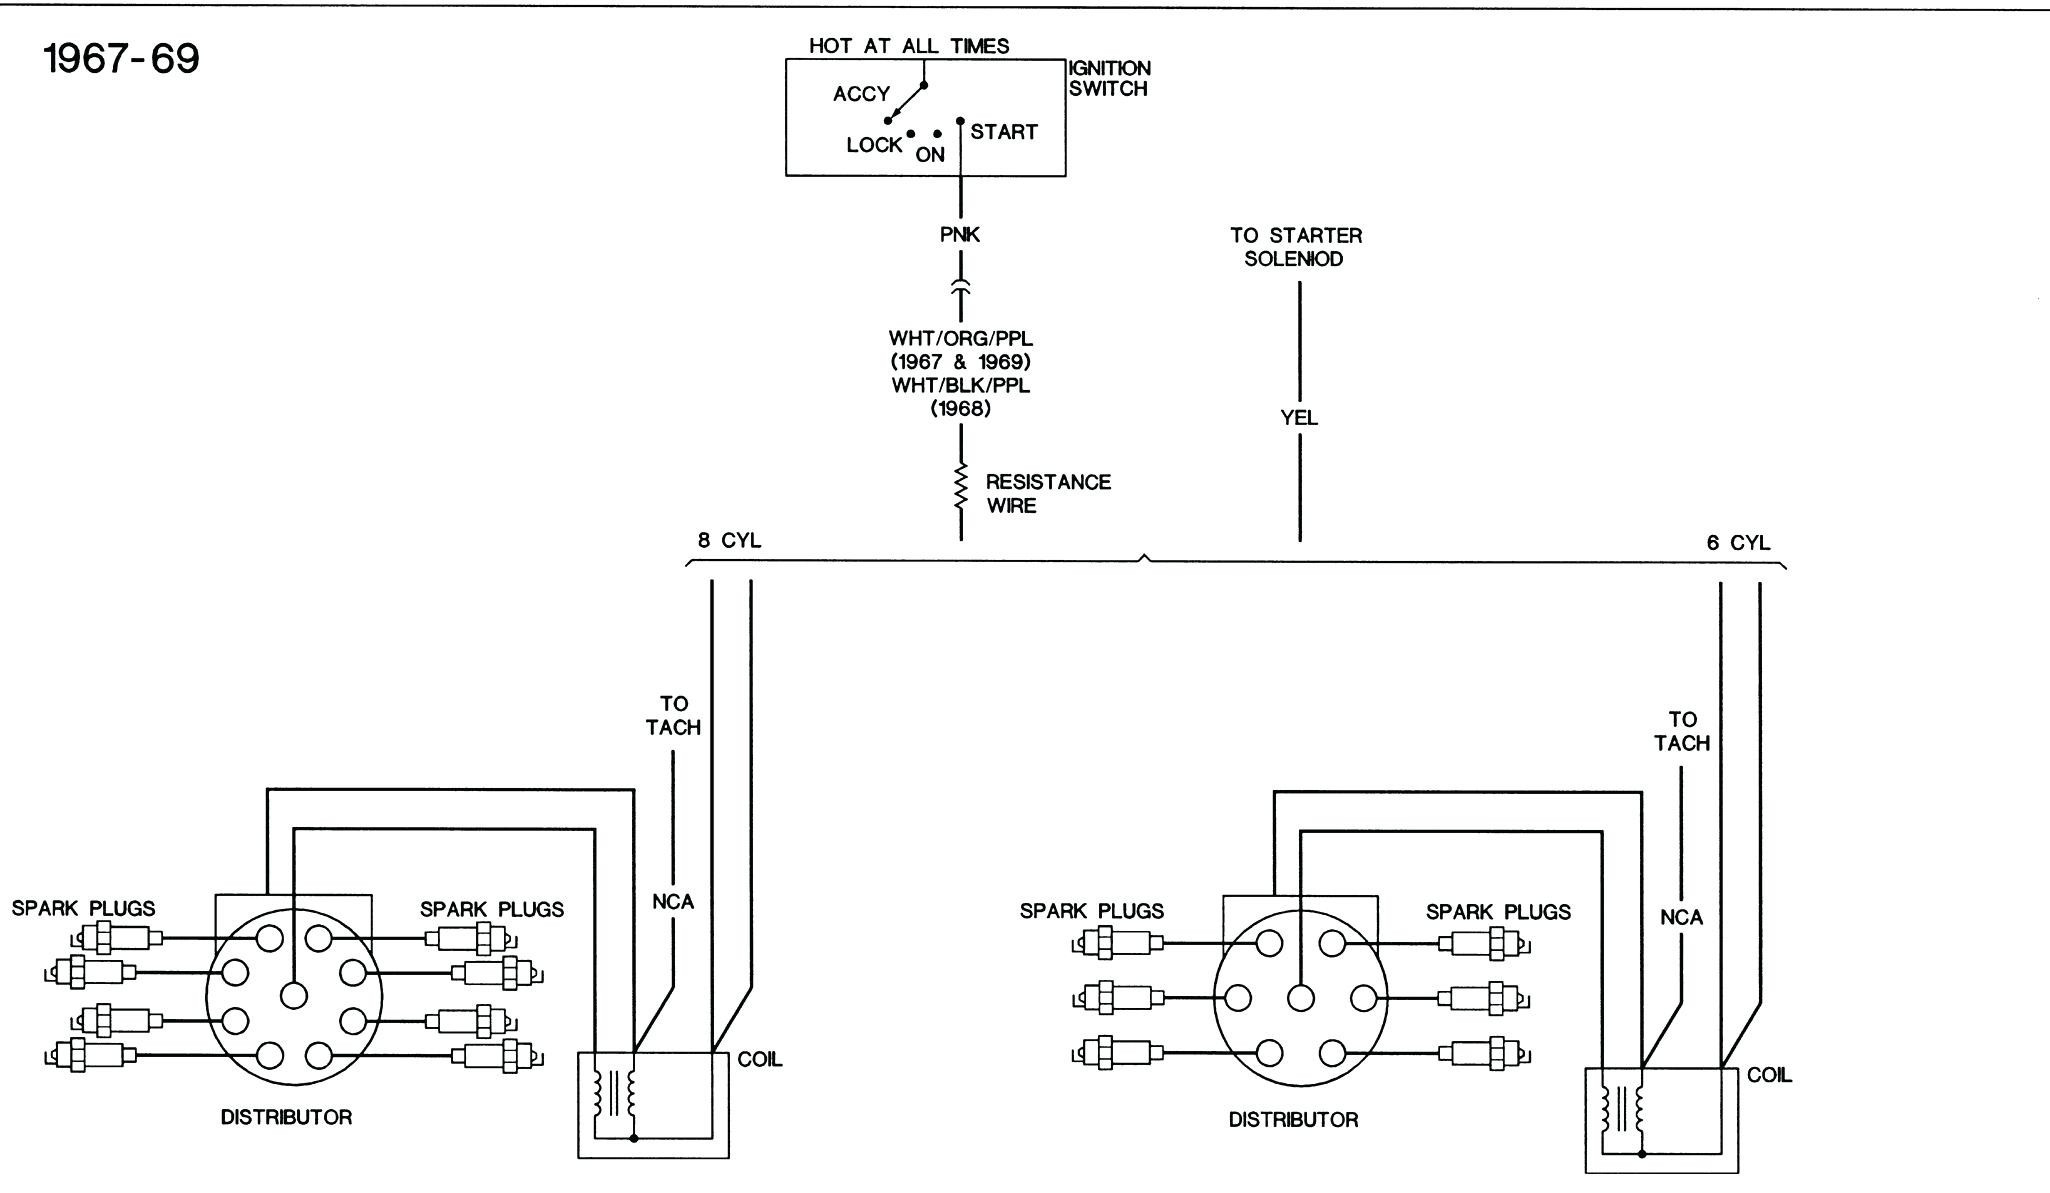 Auto Bilge Pump Wiring Diagram | Wiring Library - Rule Automatic Bilge Pump Wiring Diagram